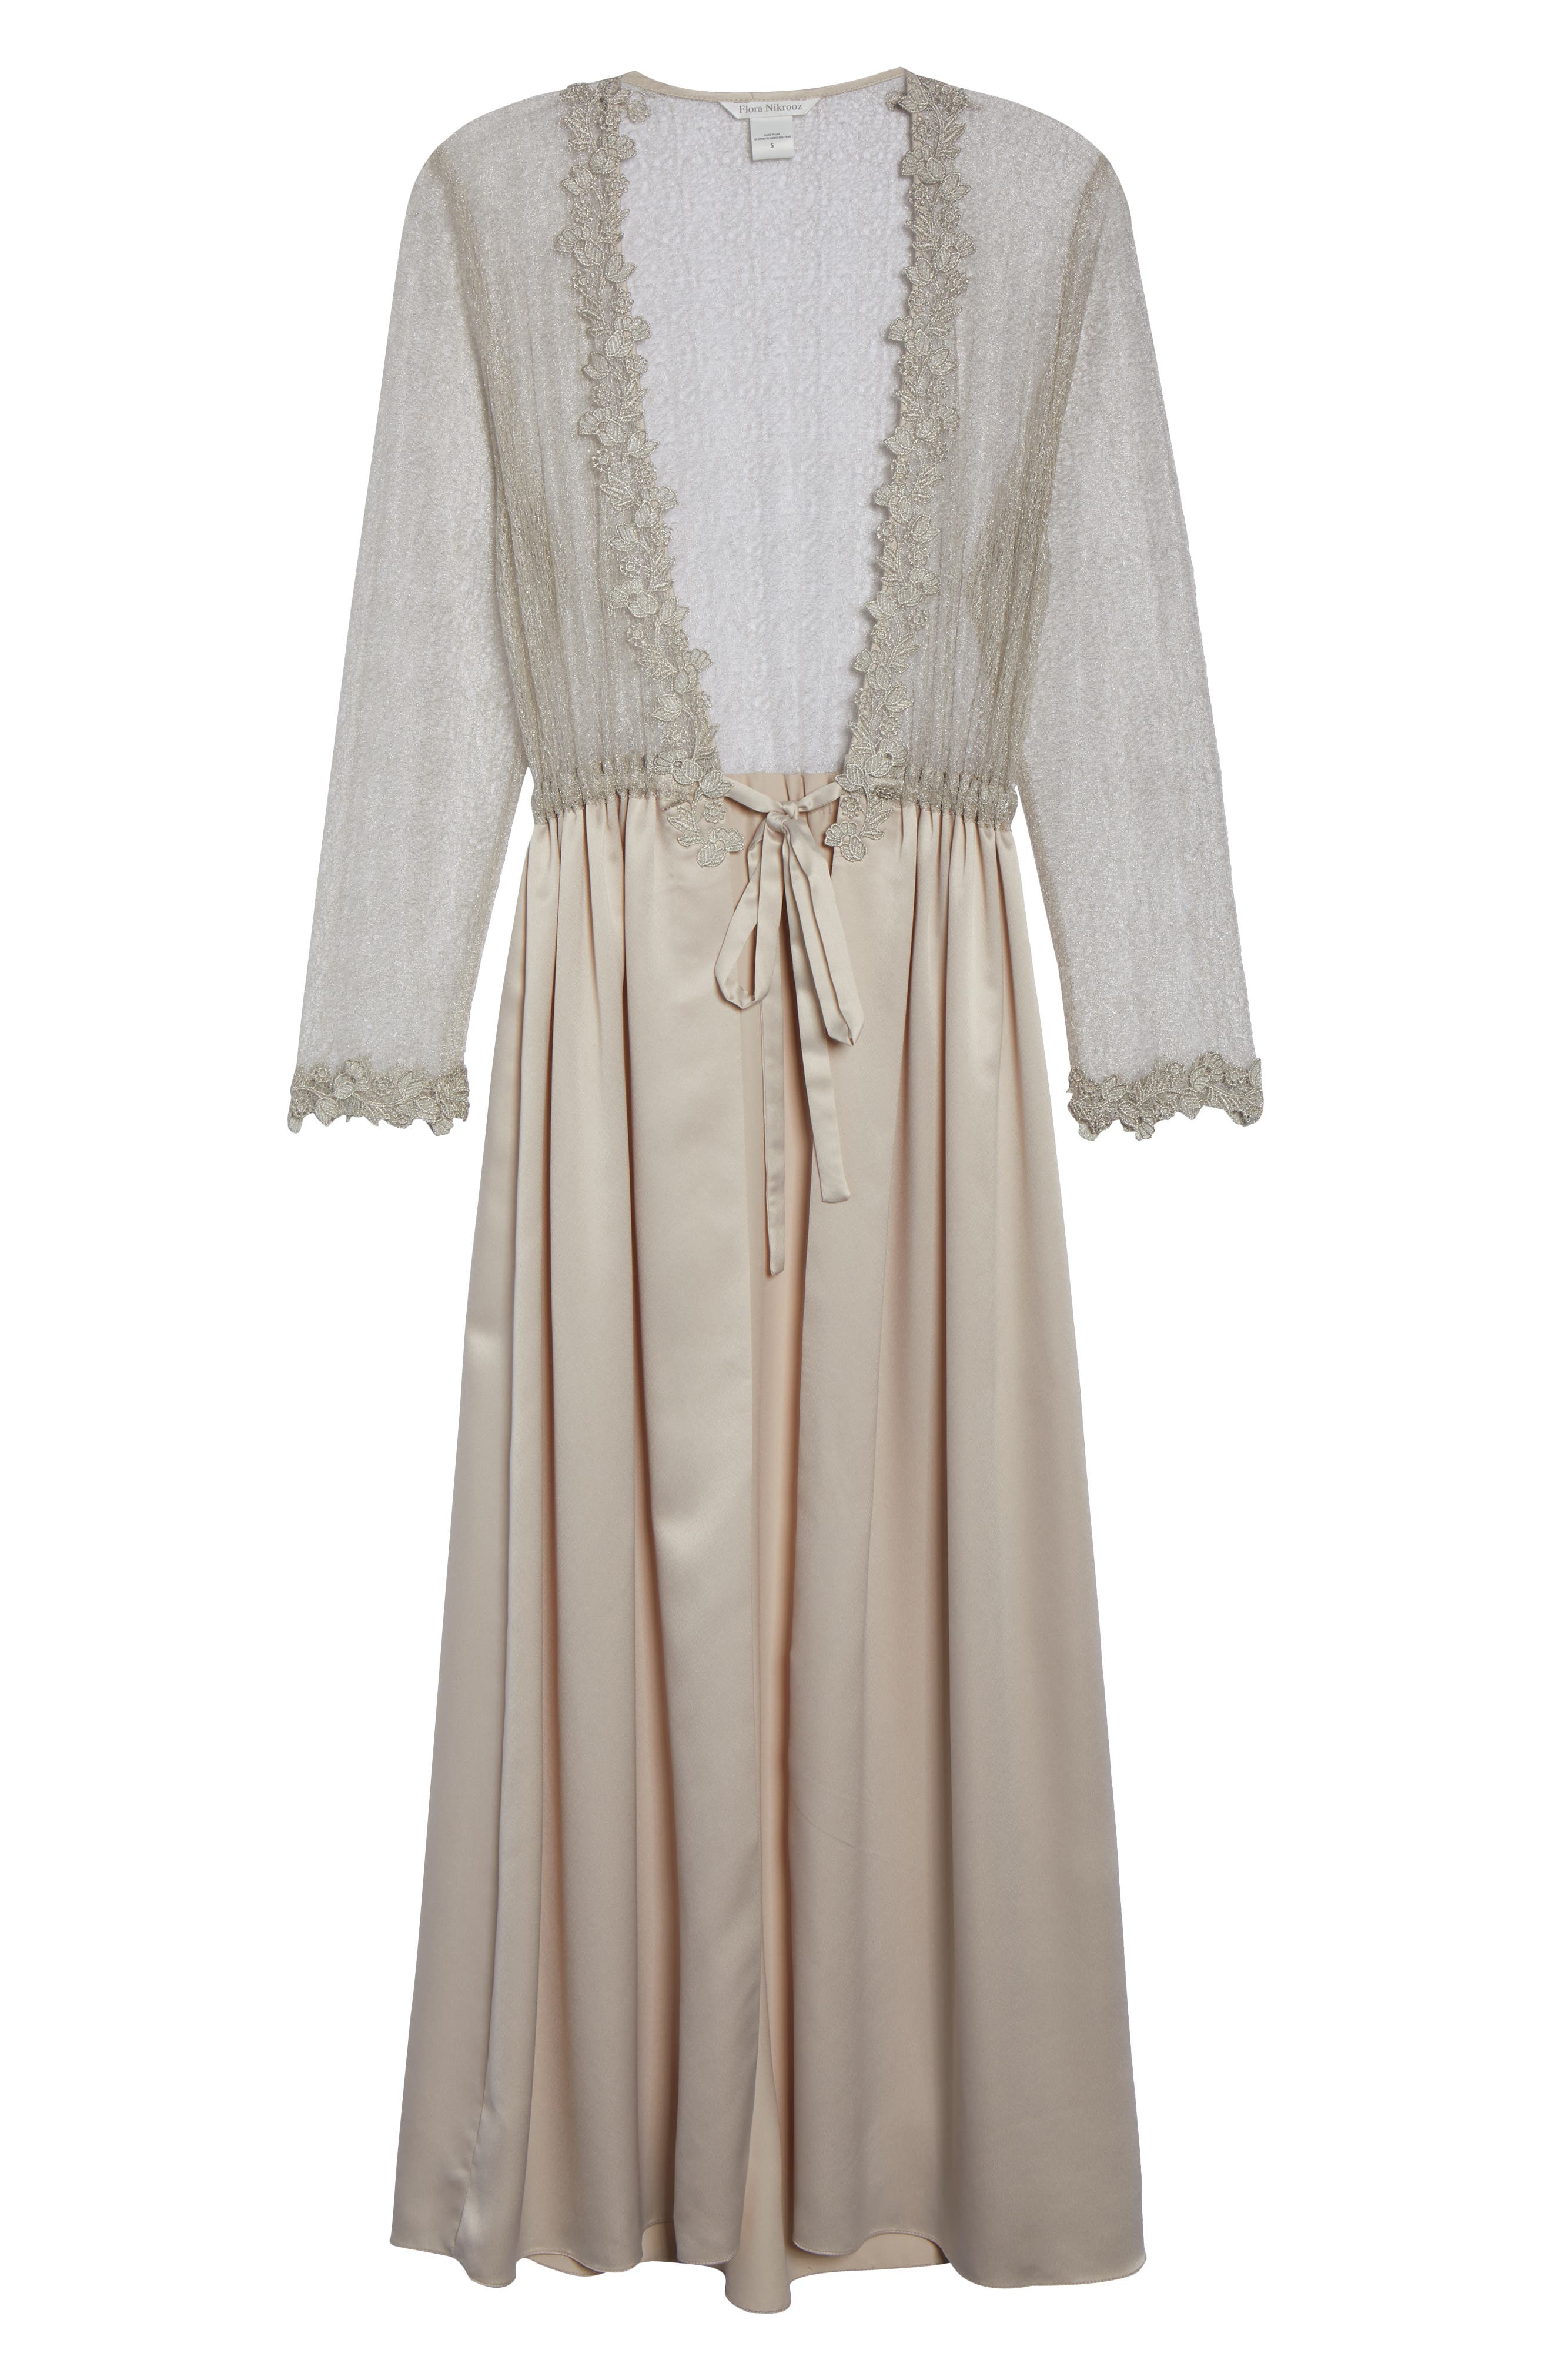 Showstopper Robe,                             Alternate thumbnail 6, color,                             CHAMPAGNE